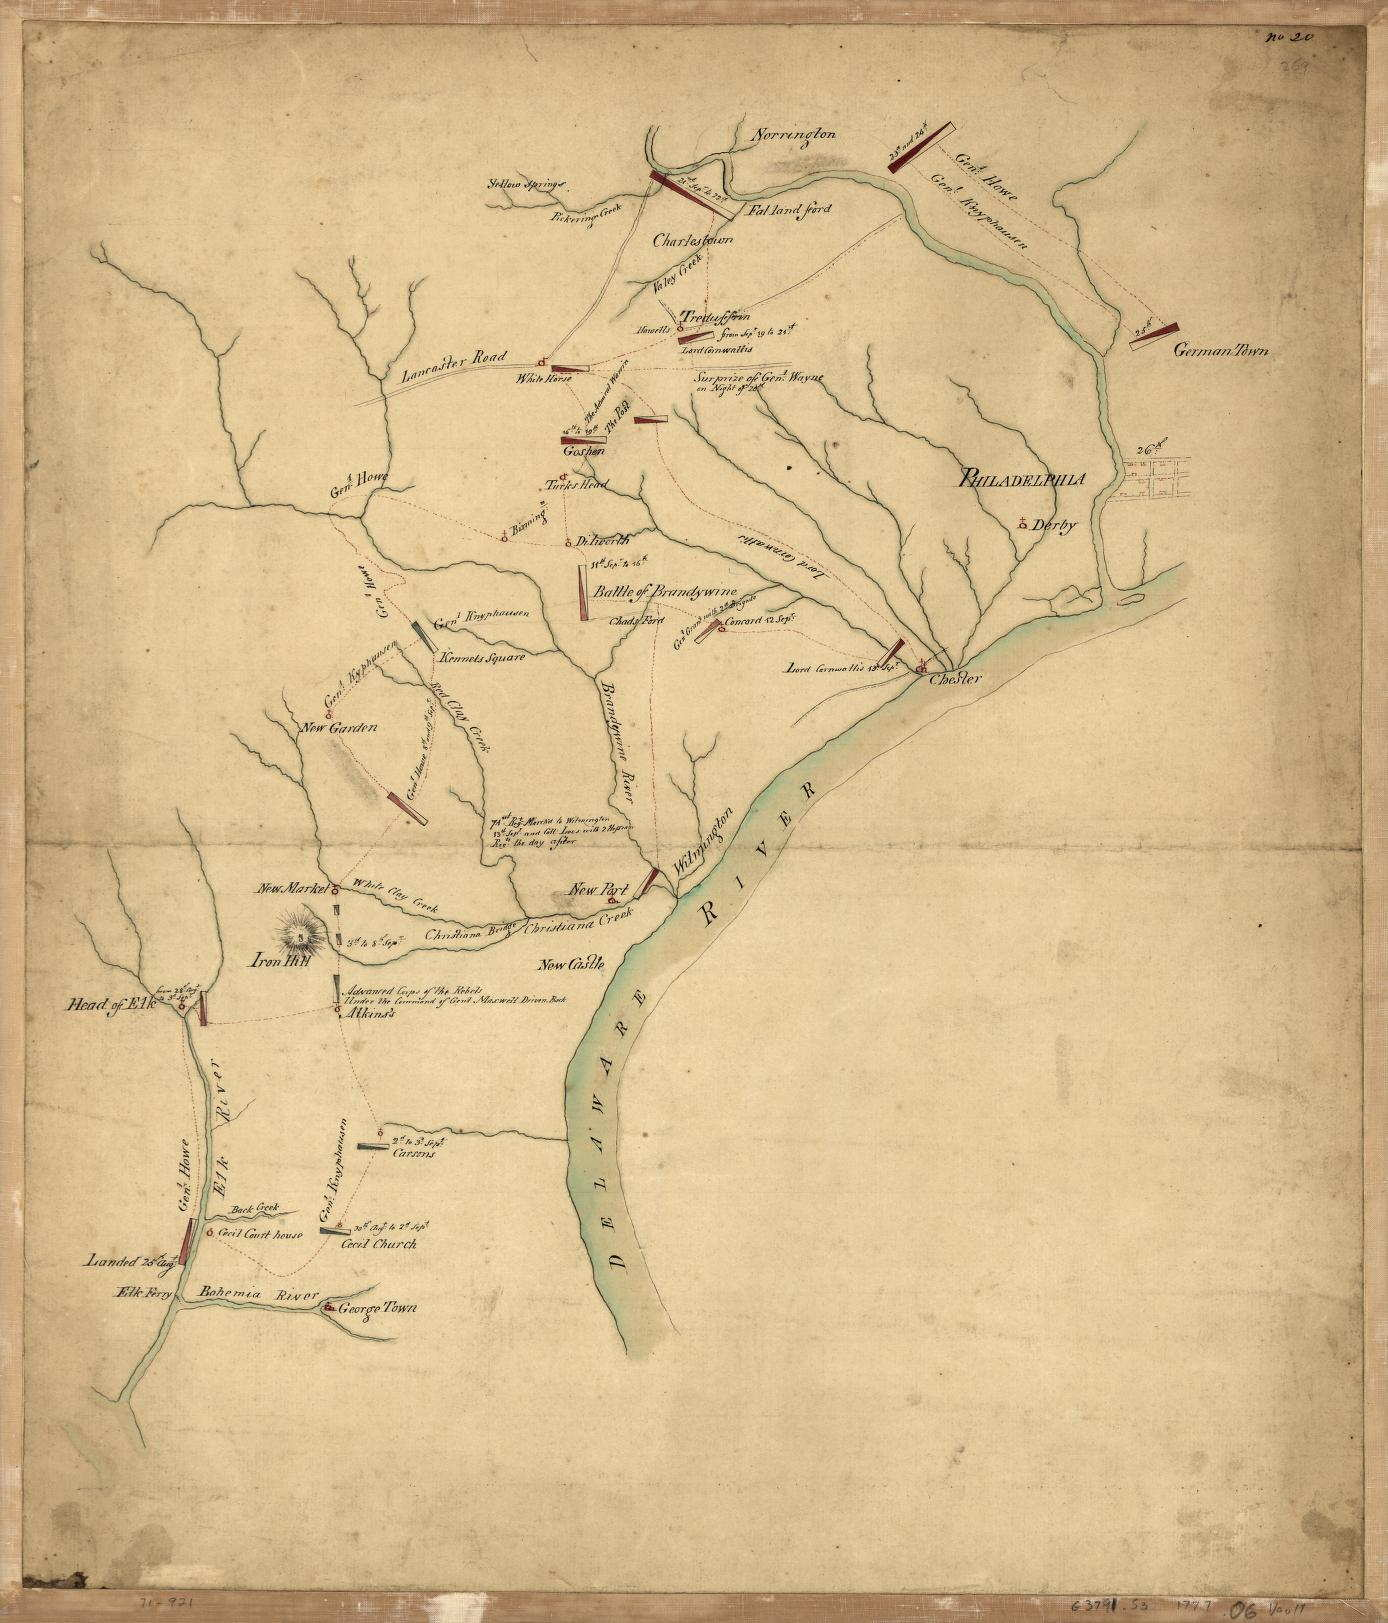 Roadmap Of The Us%0A          Philadelphia area  An untitled and undated manuscript map showing  the operations of the British army in their march on Philadelphia